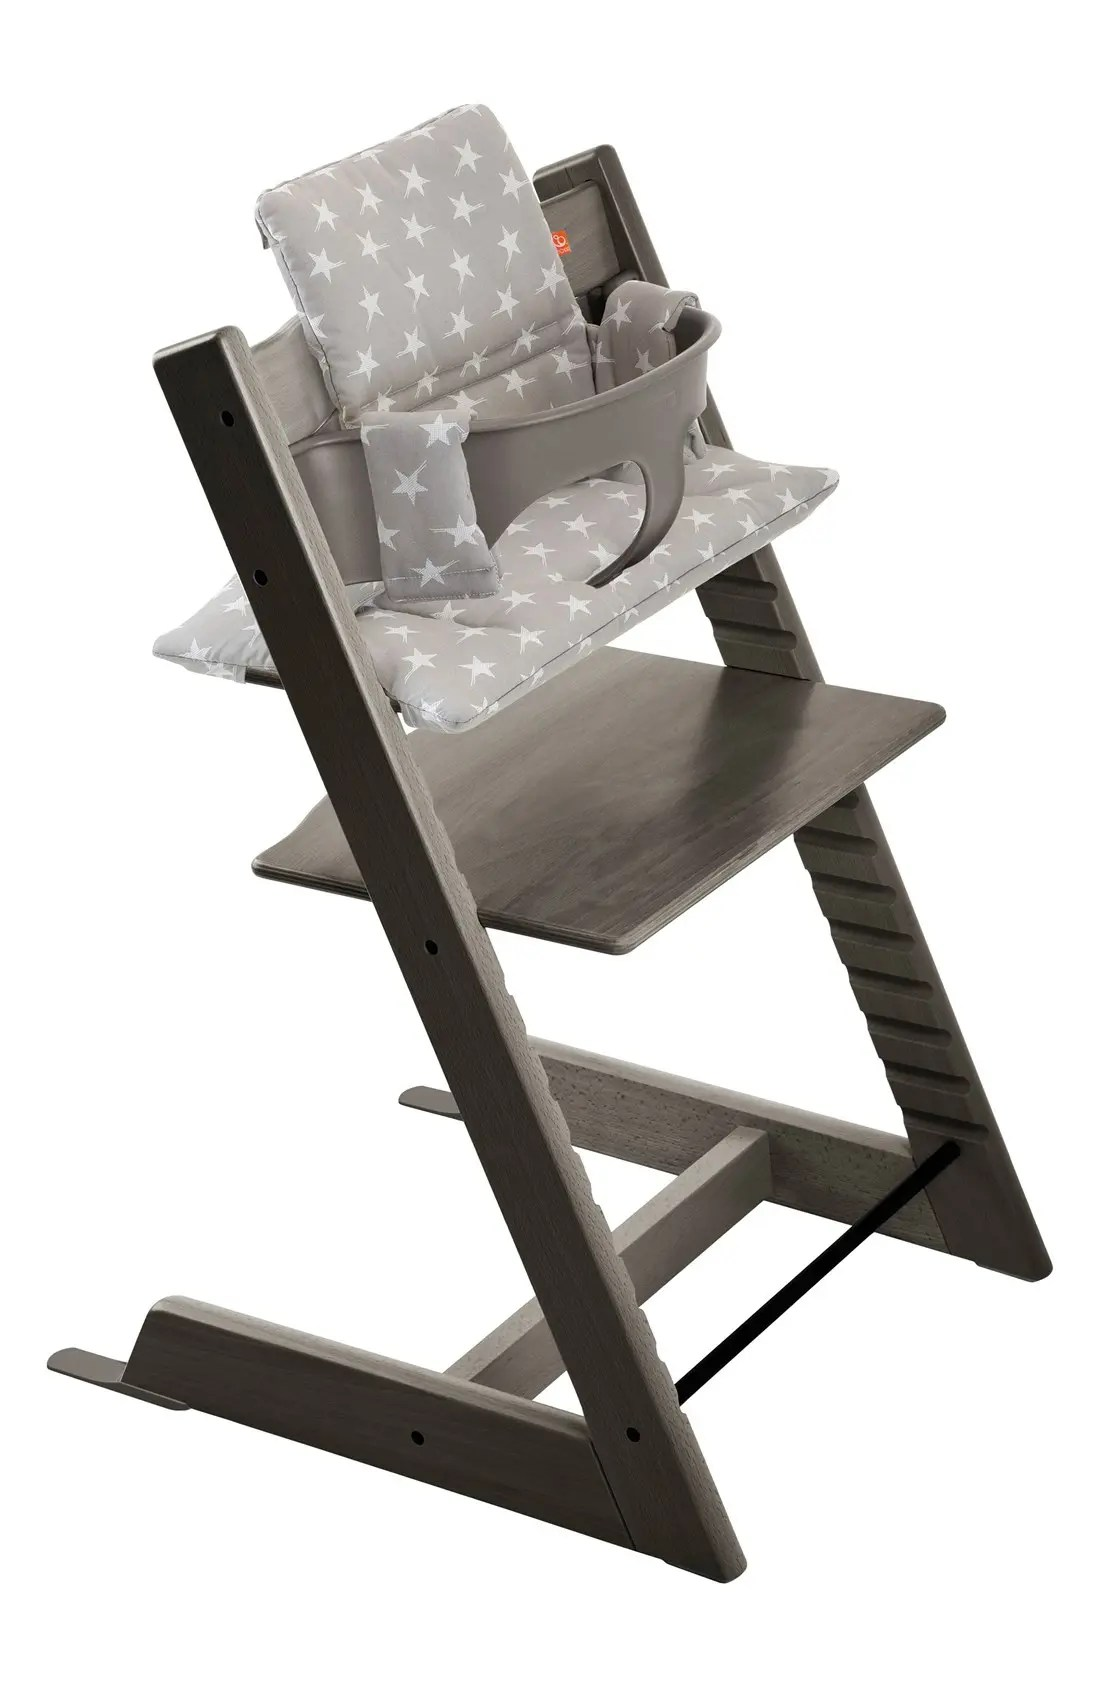 stokke high chair tray metal chairs vine 'tripp trapp®' chair, baby set, cushion & set (nordstrom exclusive) | nordstrom